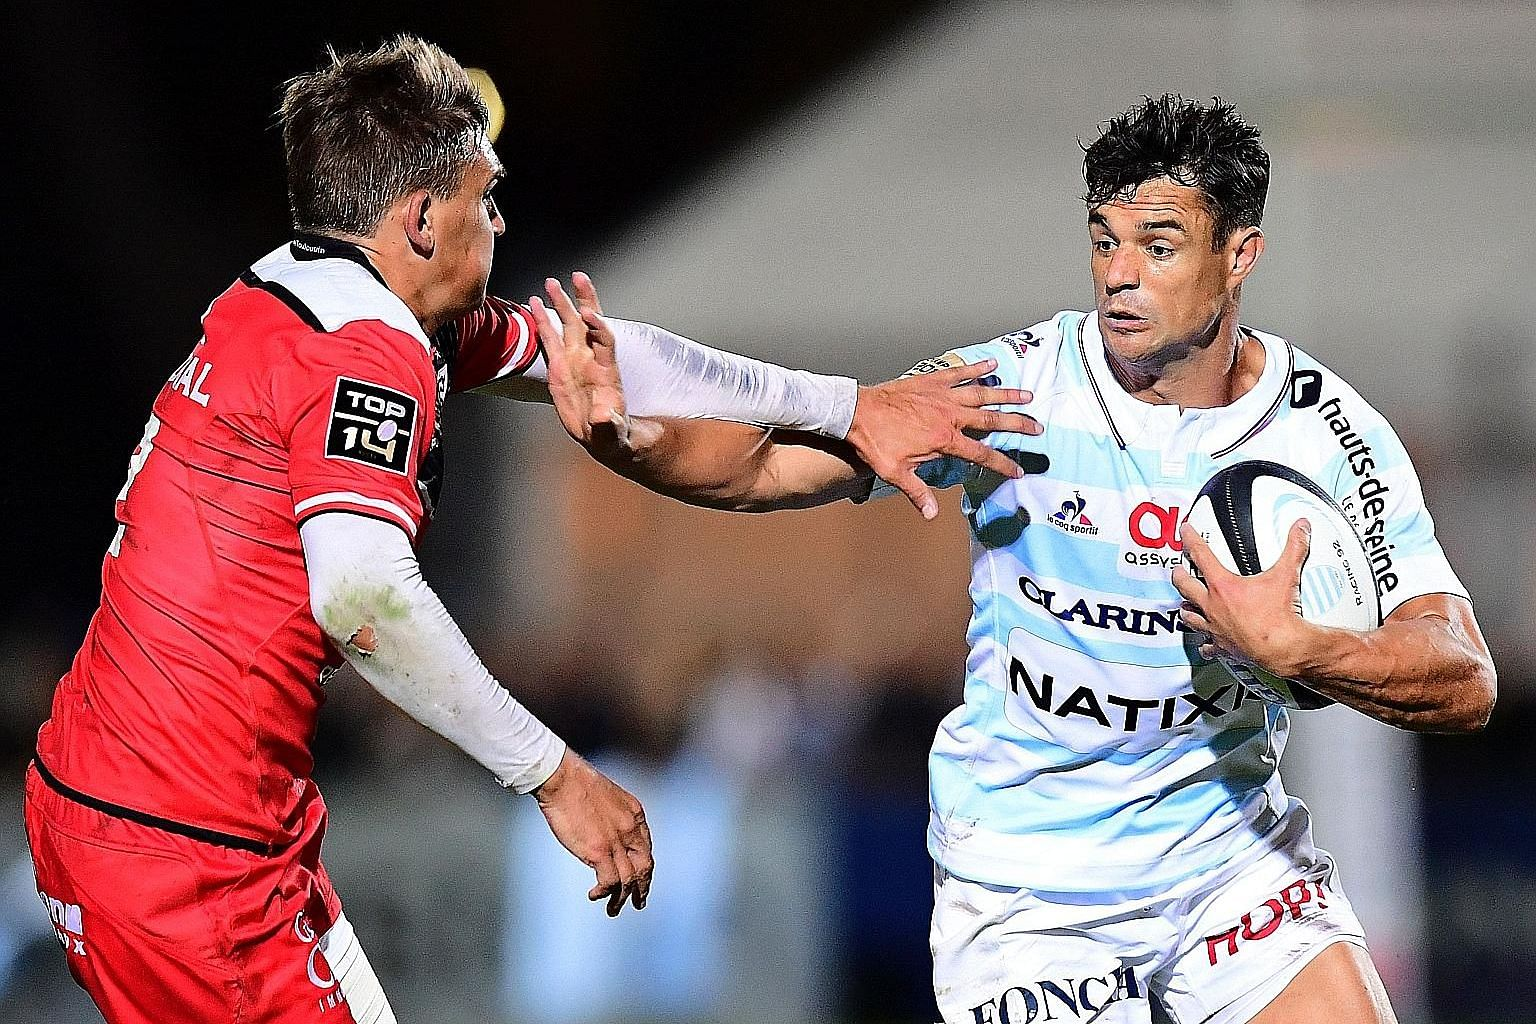 Racing's Kiwi fly-half Dan Carter trying to get past Toulouse's English fly-half Toby Flood in their match last month. He and two team-mates failed a drug test after the previous Top 14 season's final but the two Kiwis are said to have been allowed t